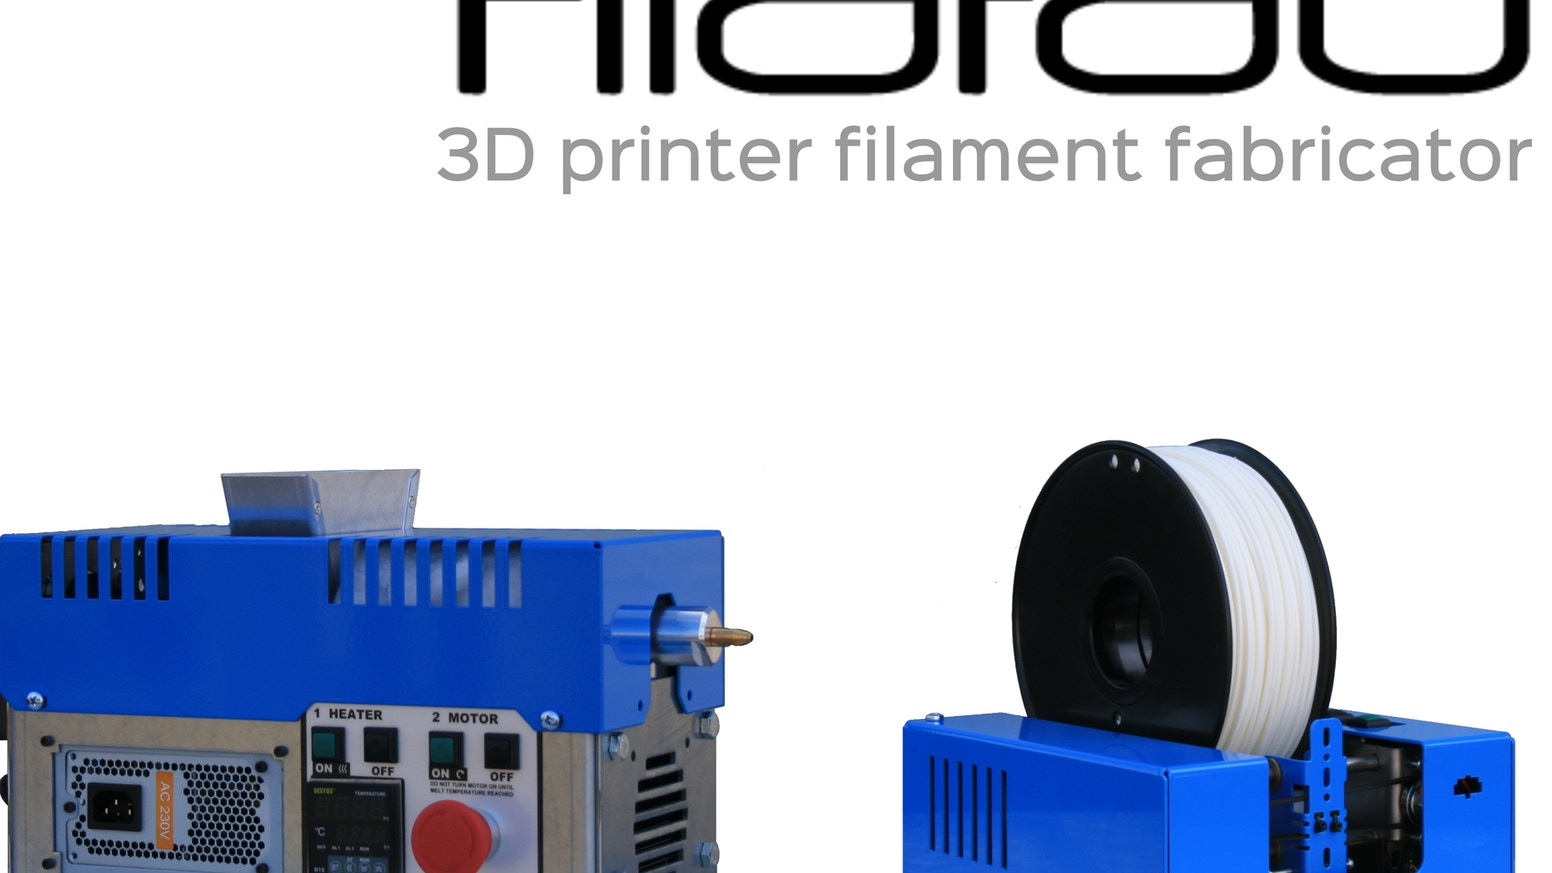 Extrude high quality filament for your 3D printer from pellets or recycled plastic and re-fill used spools automatically.